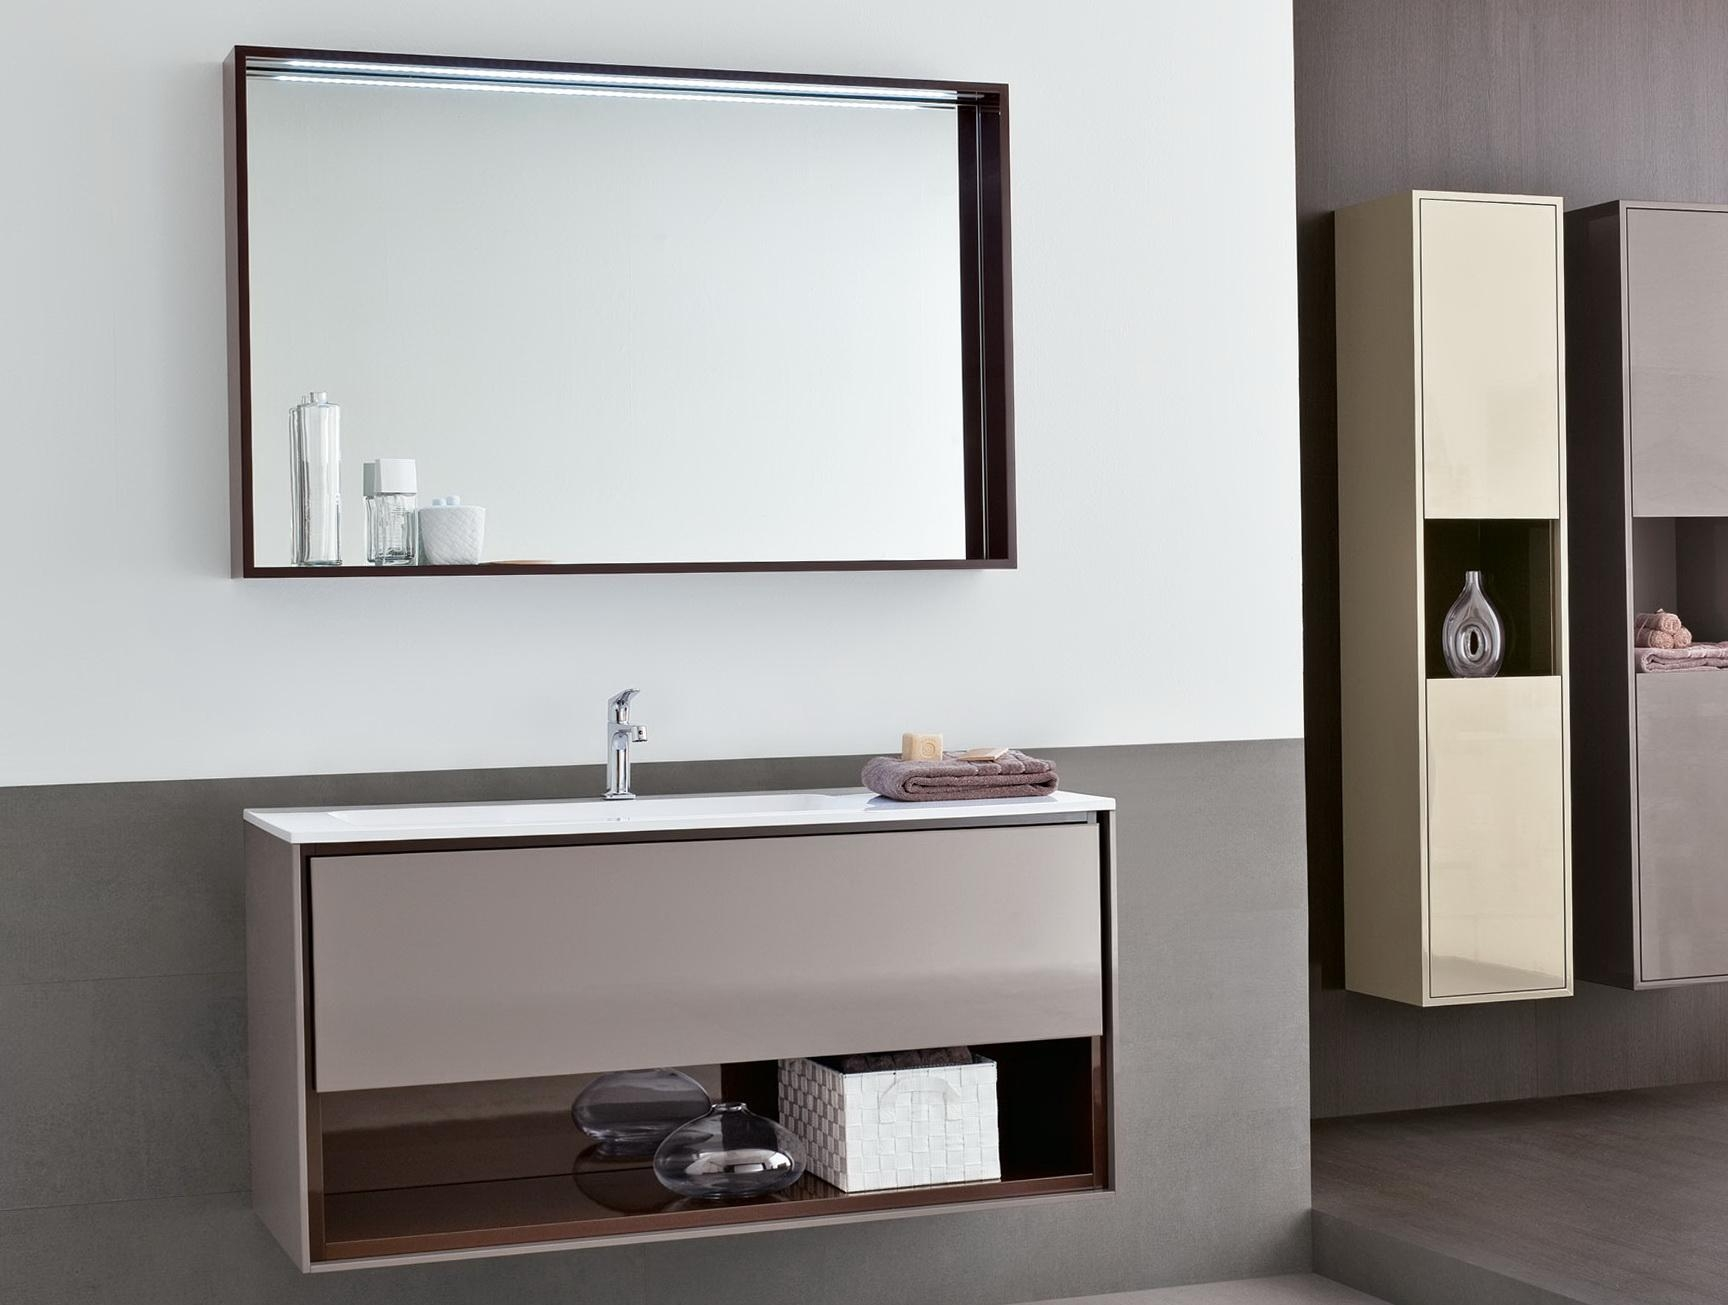 Tall Bathroom Mirrors  Mirror Ideas